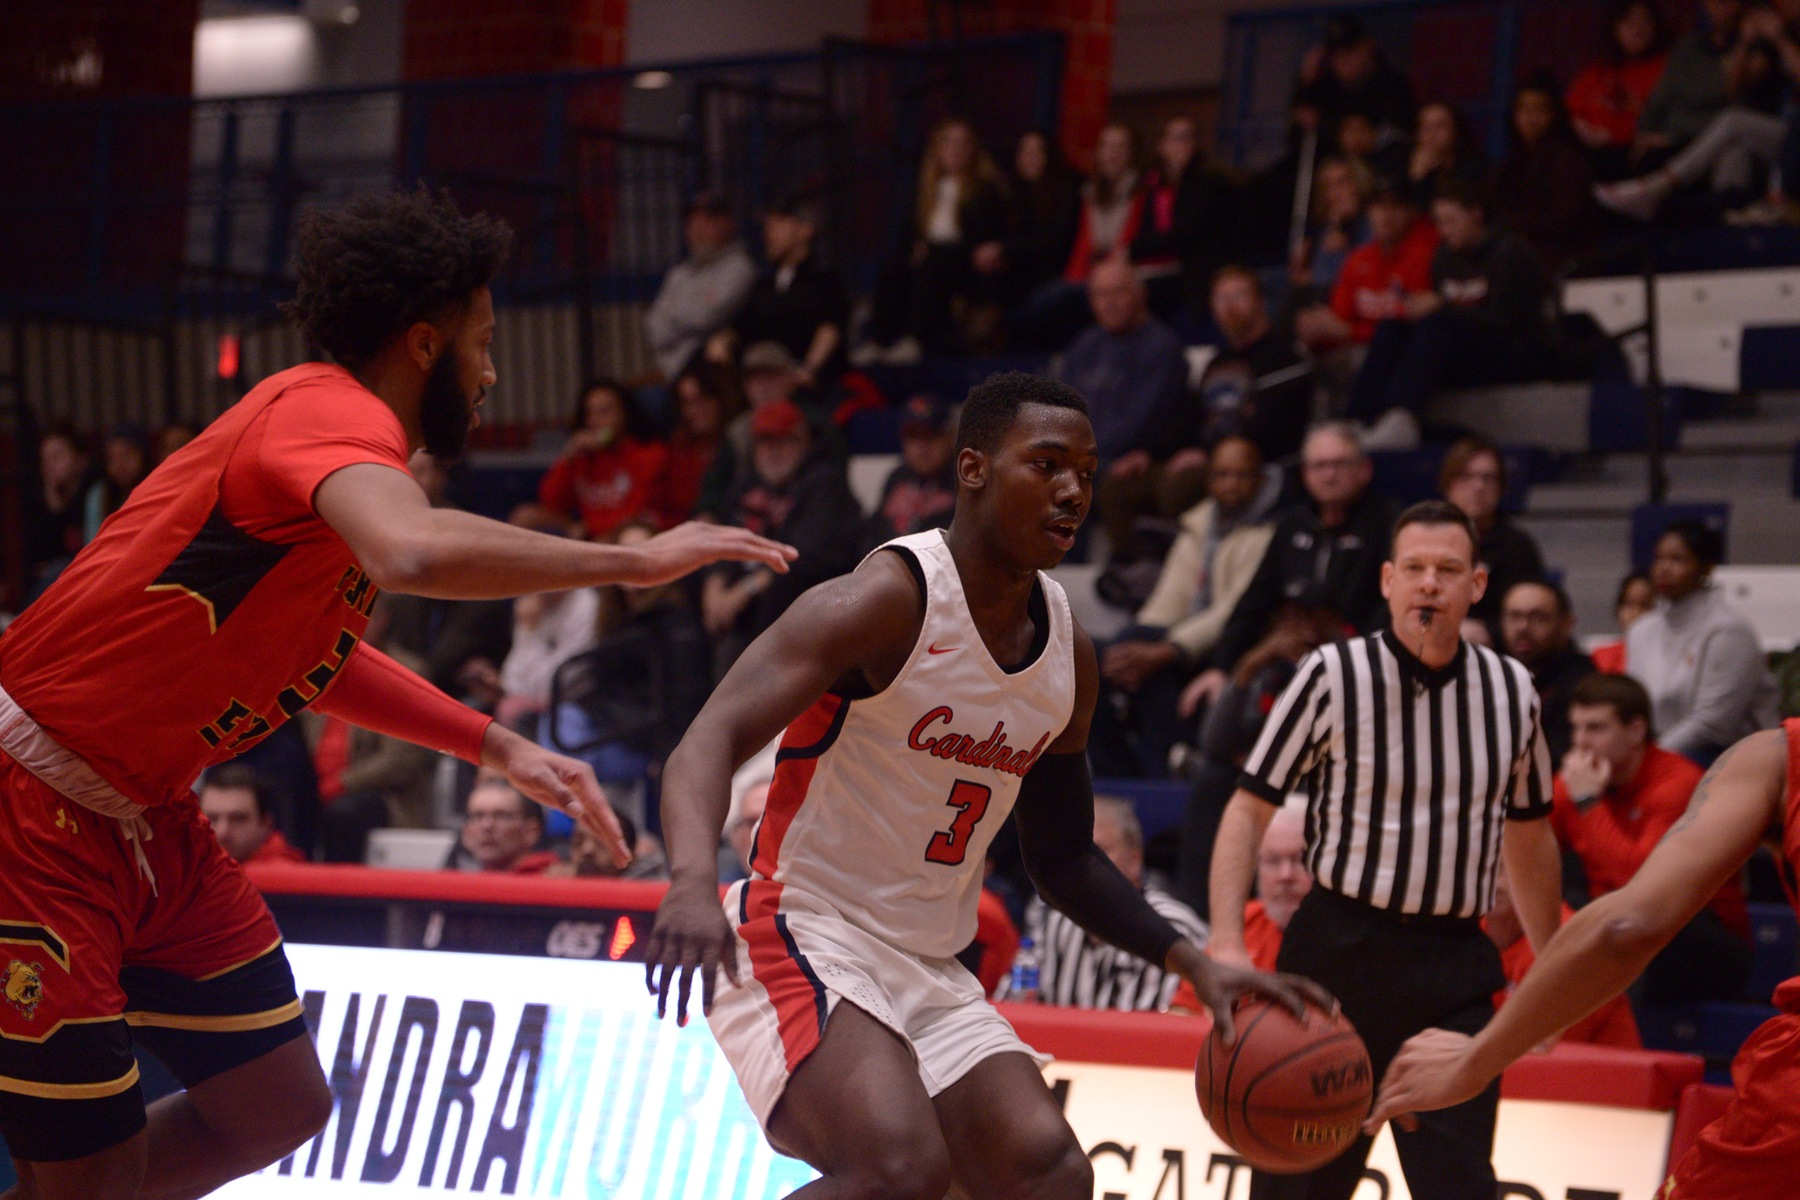 SVSU falls in road matchup at NMU, 87-73